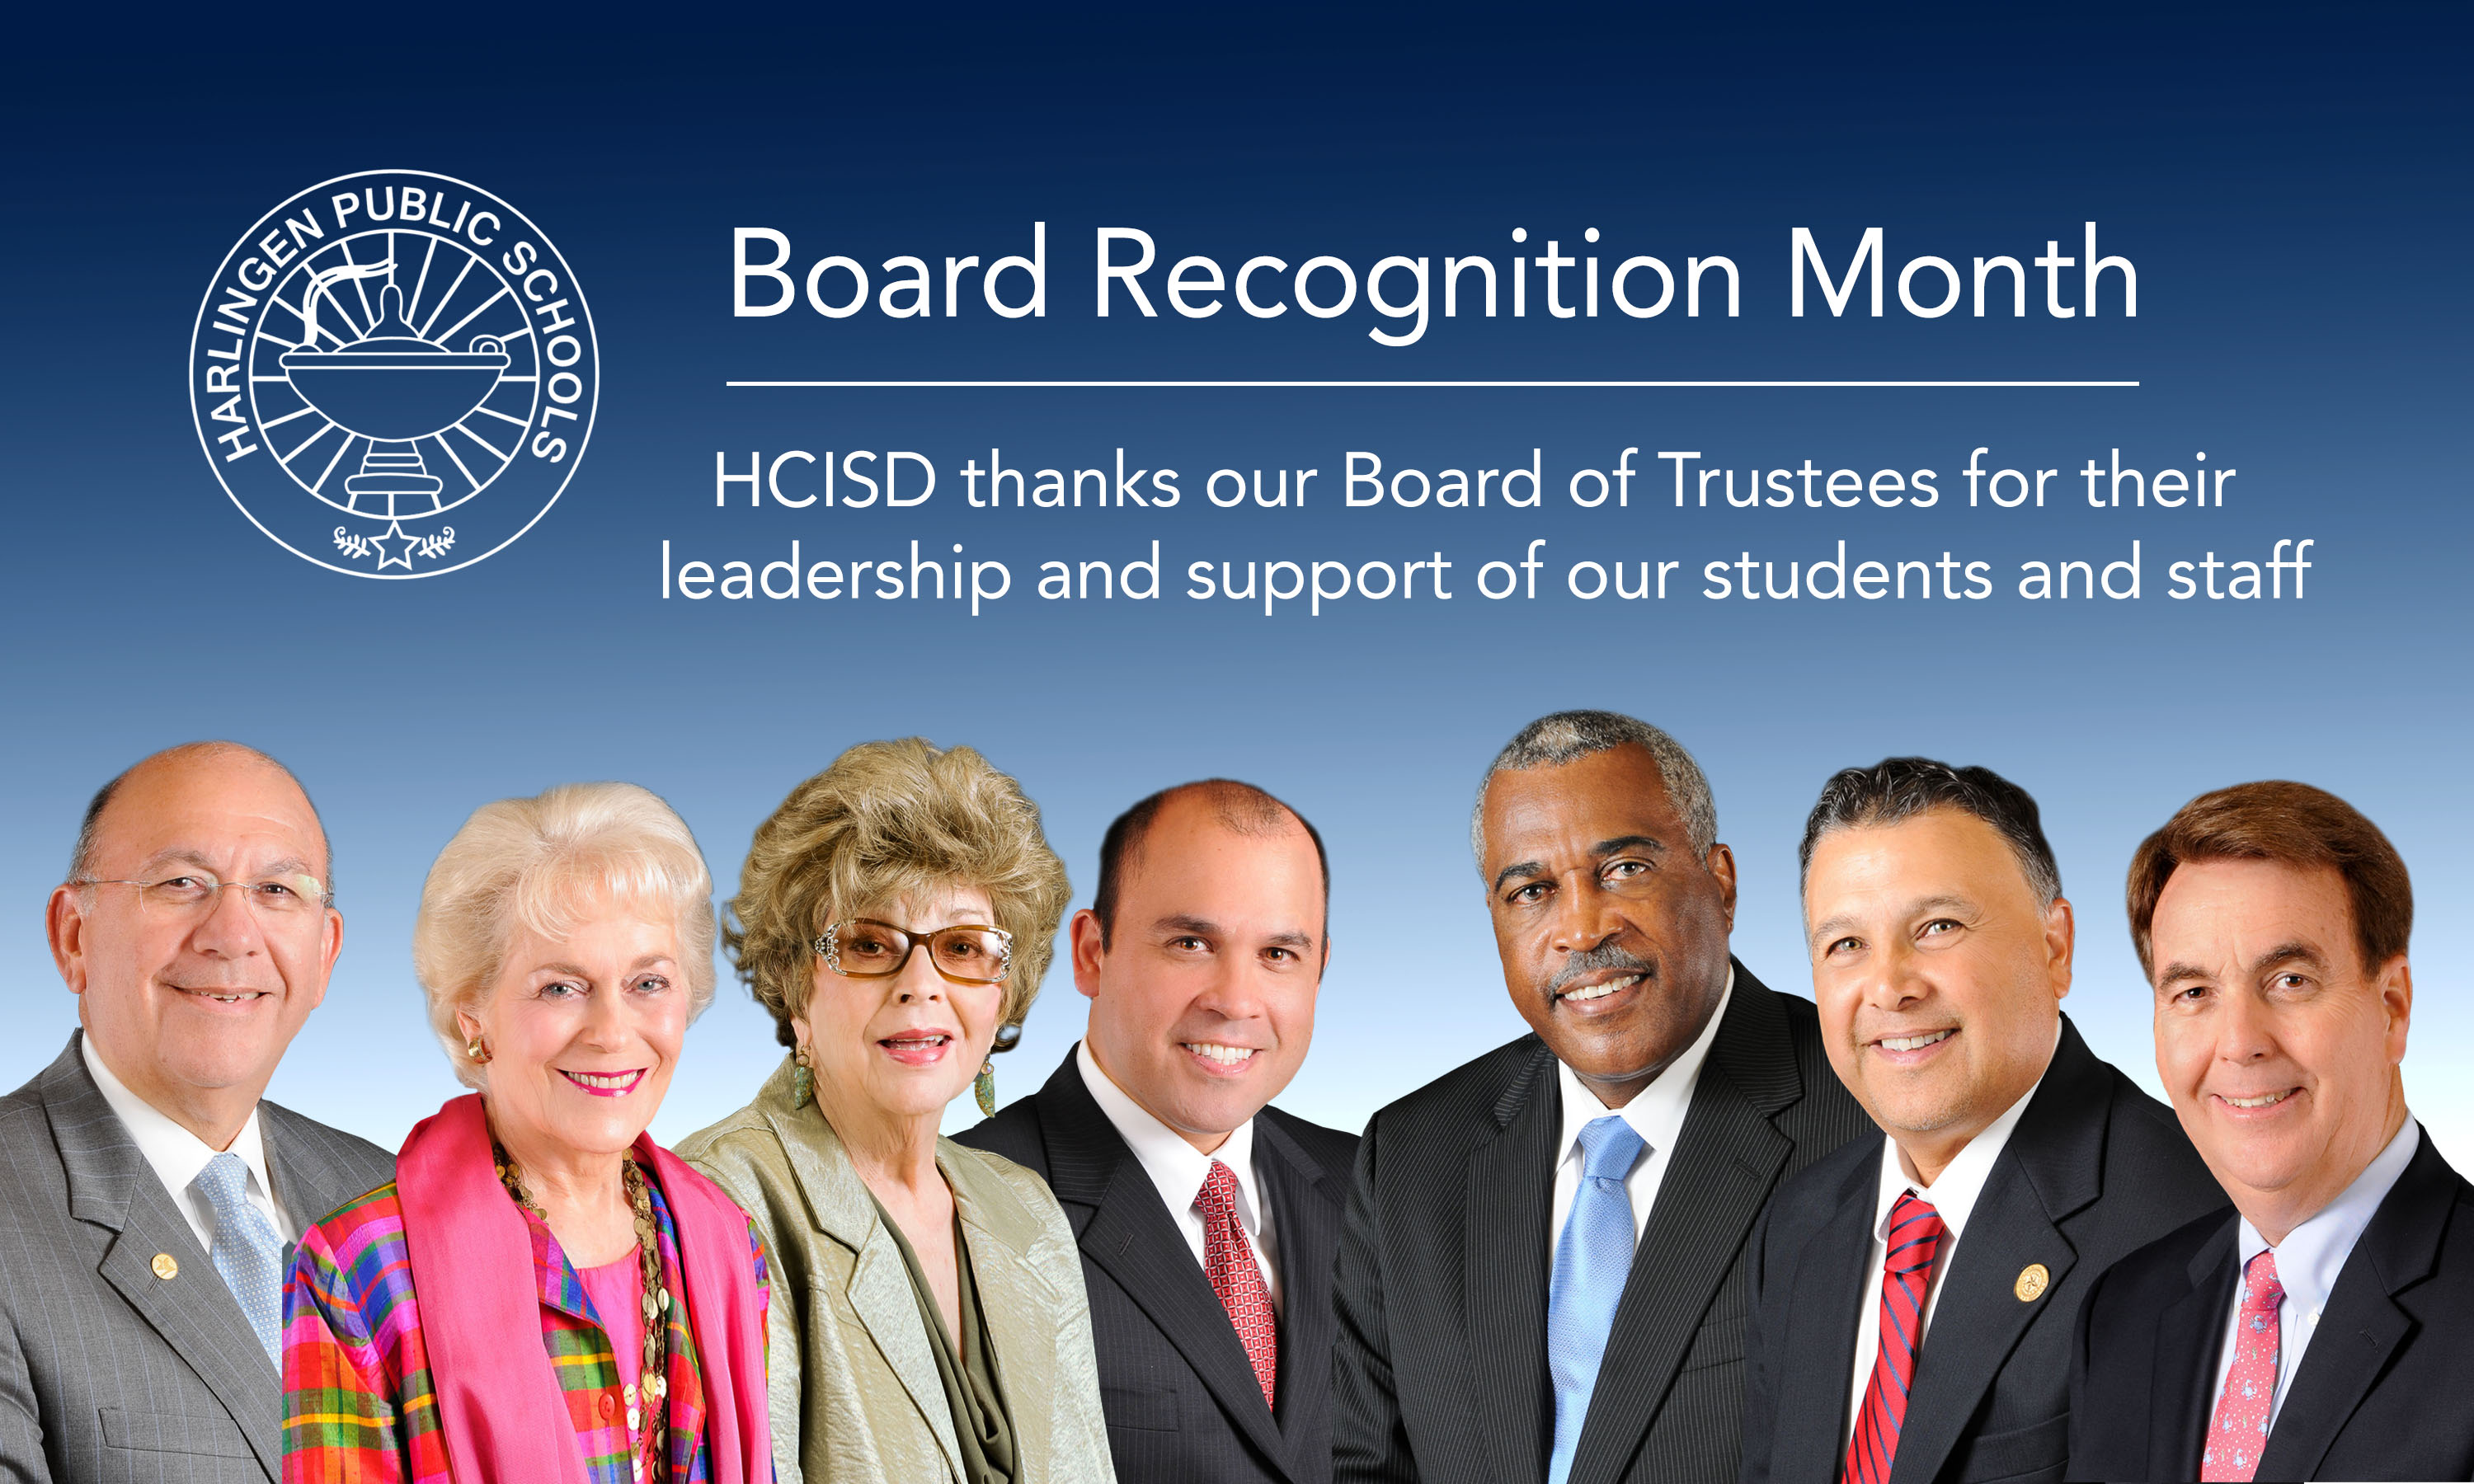 HCISD celebrates Board Appreciation Month